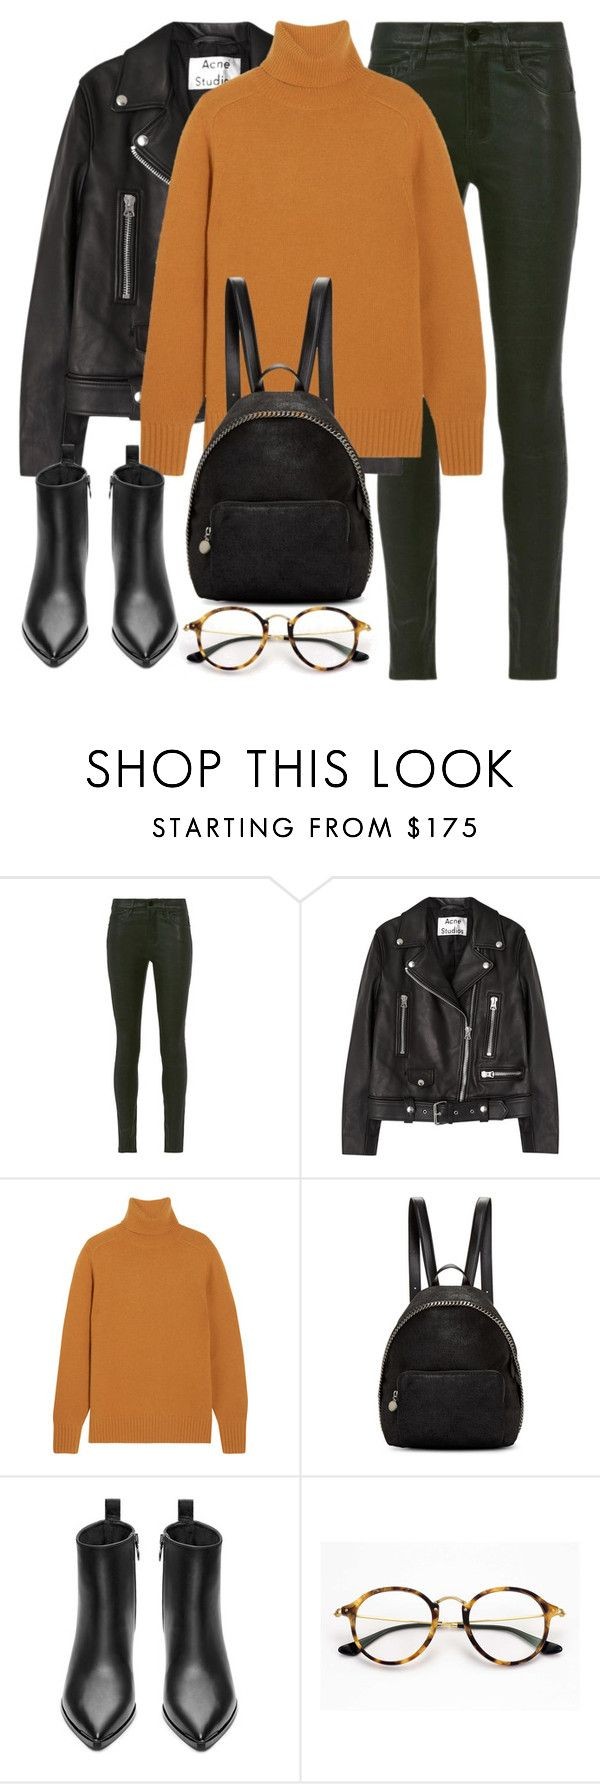 """""""Untitled #2921"""" by elenaday ❤ liked on Polyvore featuring Frame Denim, Acne Studios, Chloé, STELLA McCARTNEY and Ray-Ban"""